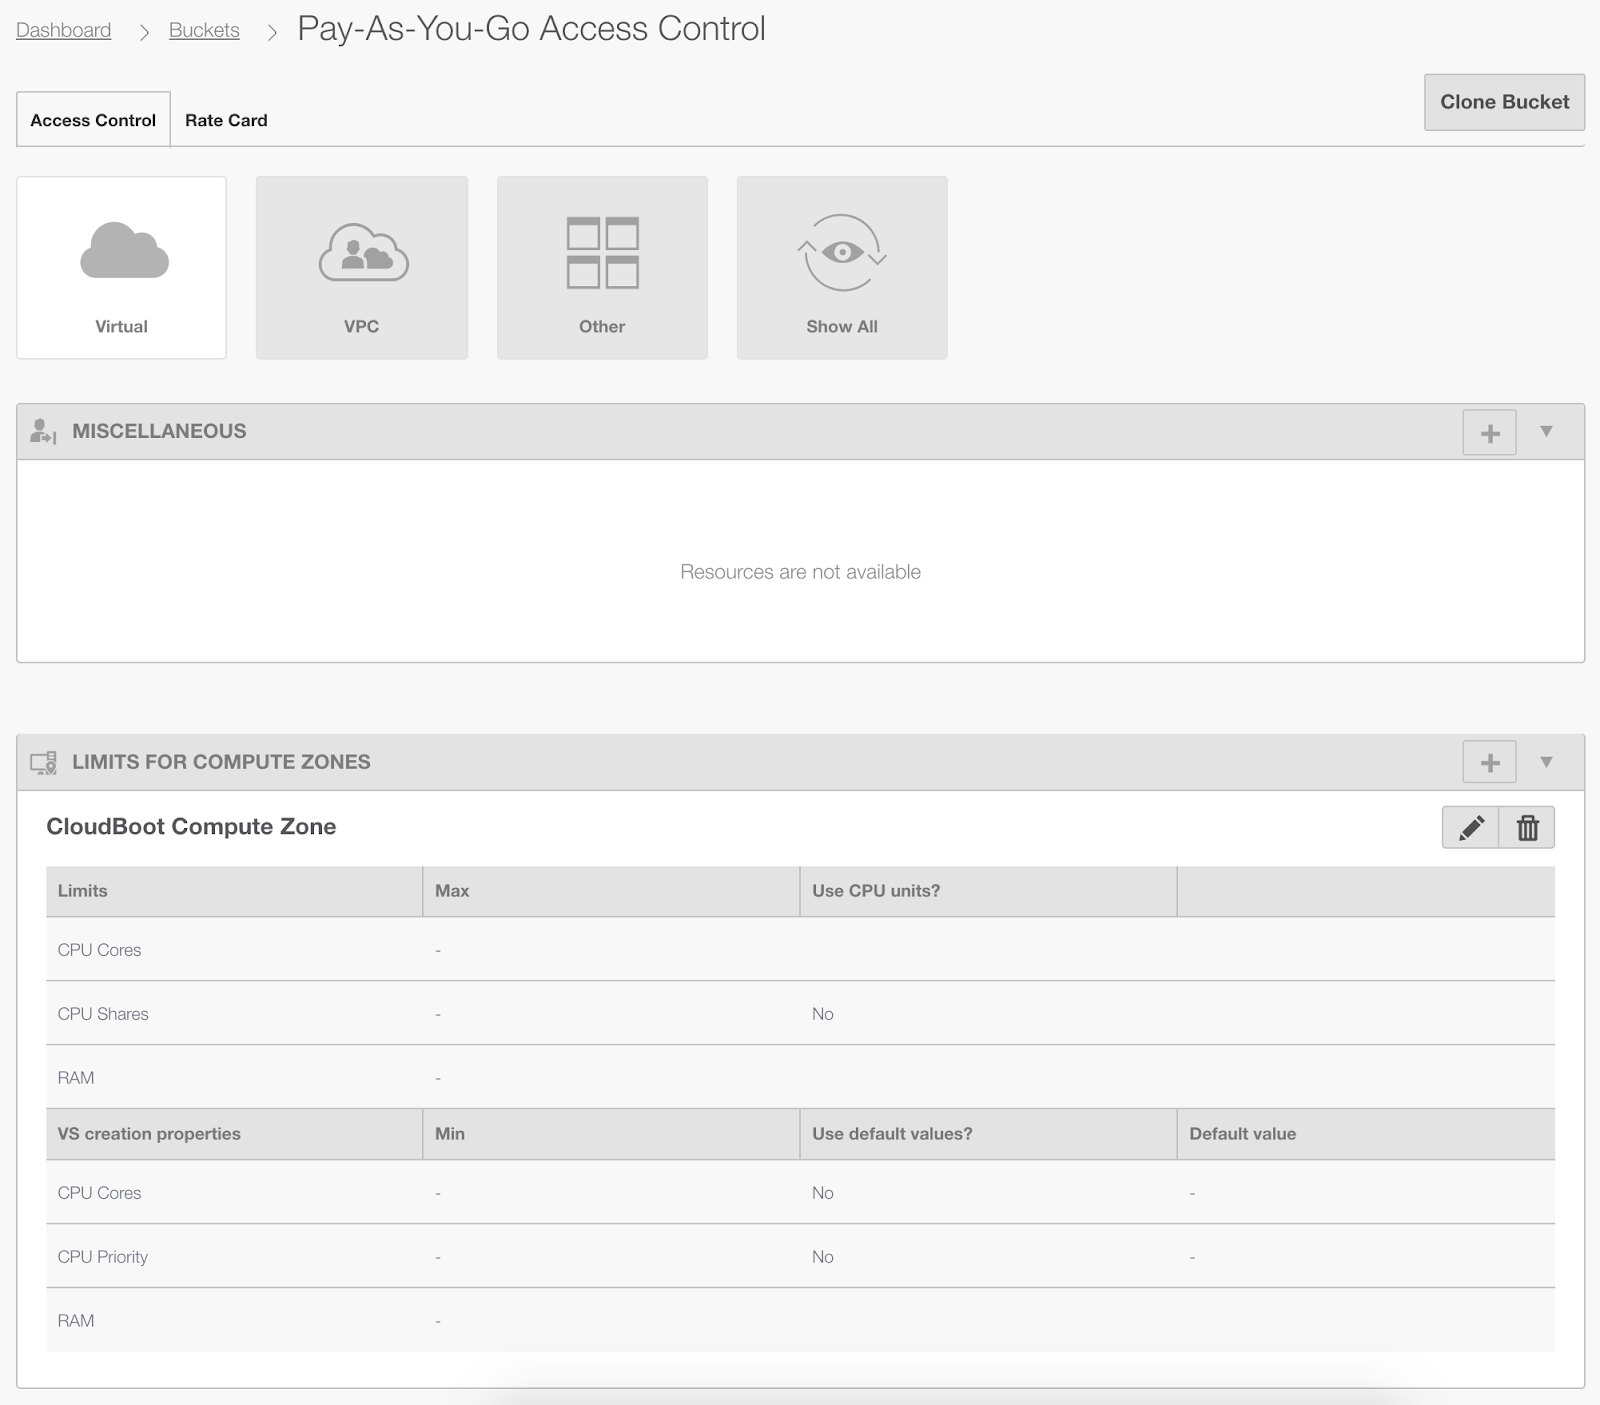 OnApp buckets - flexible billing for cloud resources - access control